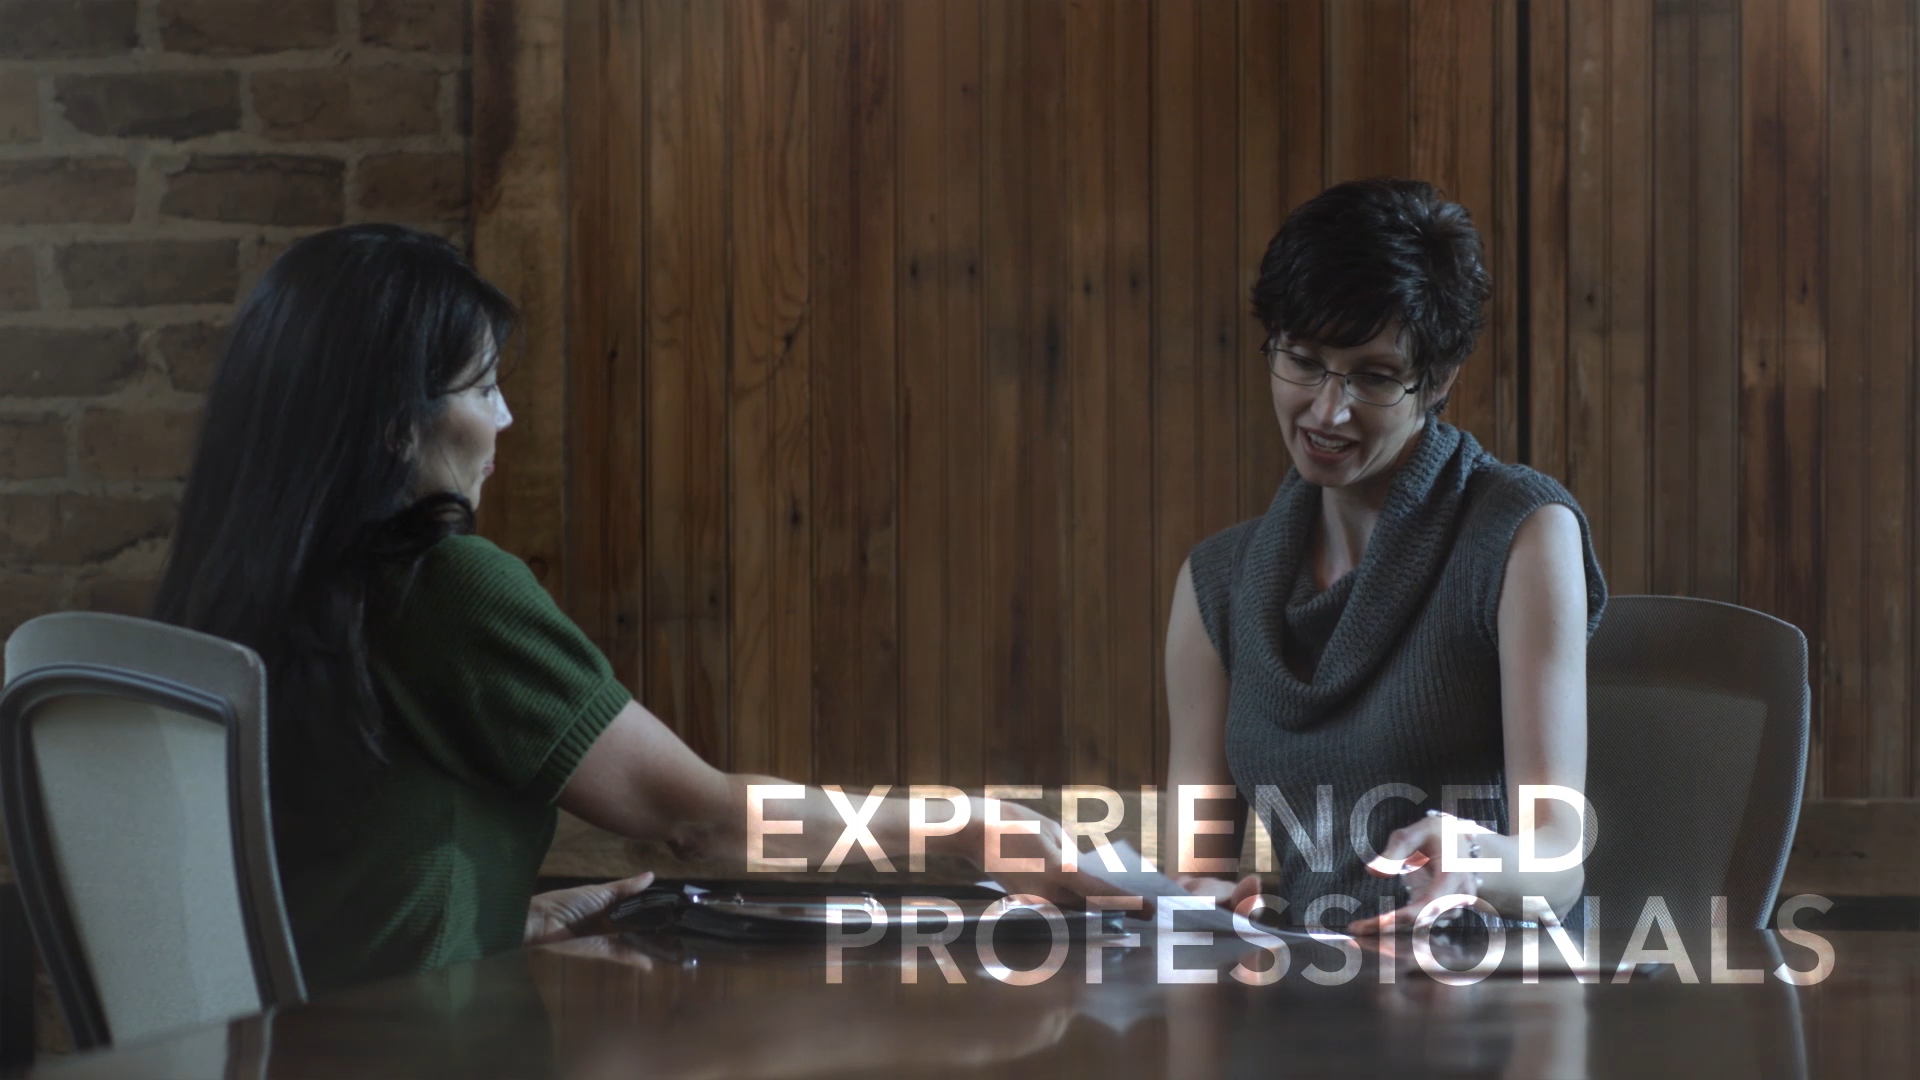 Interviewee and Interviewer with the caption: Experienced Professionals